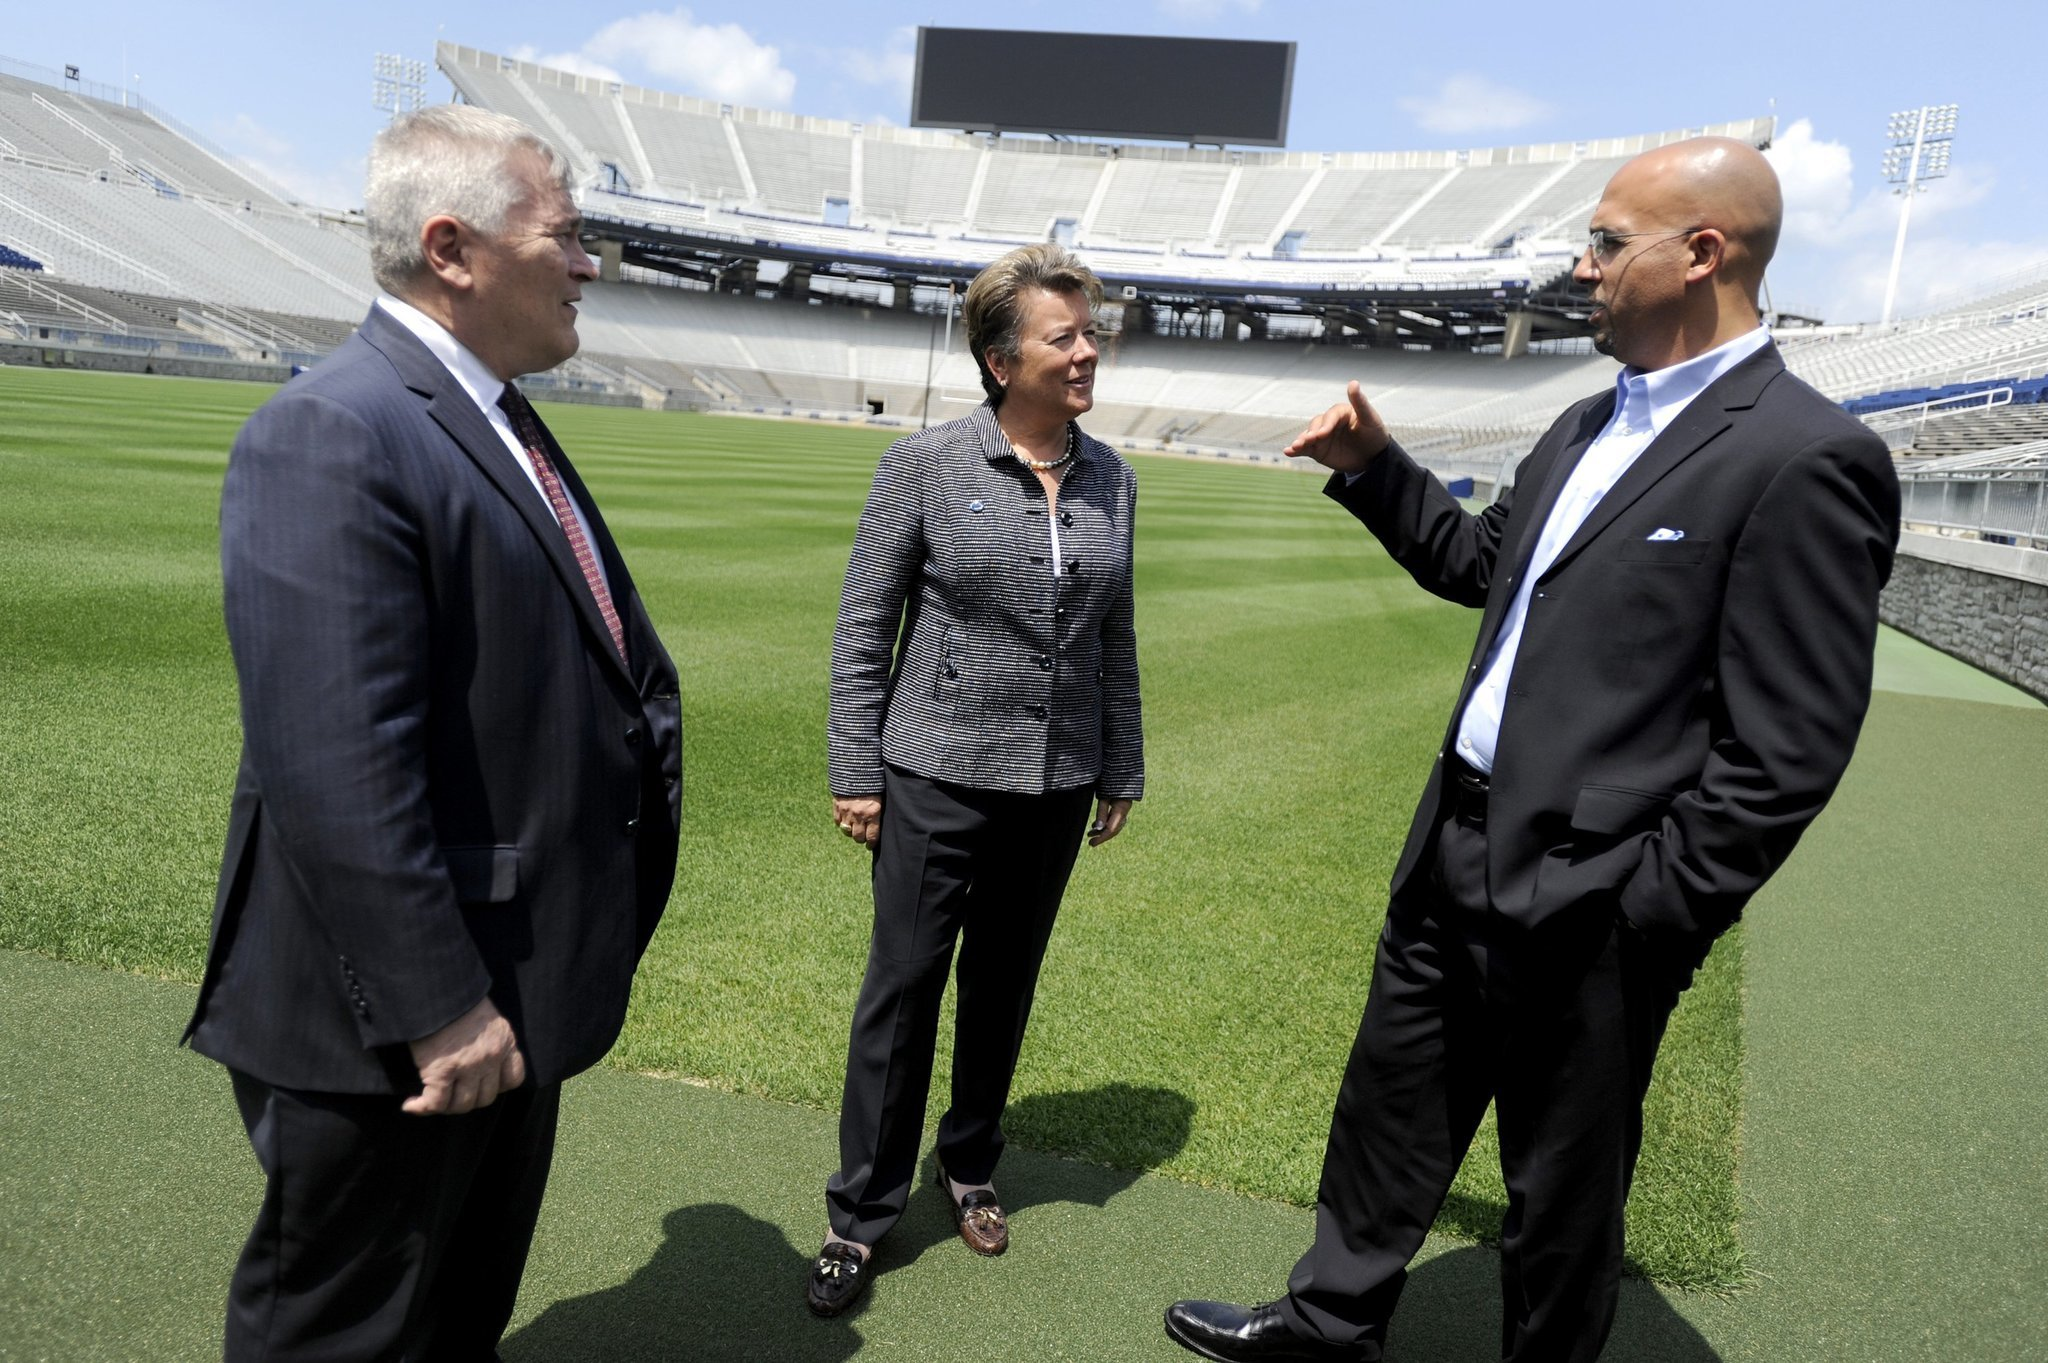 Mc-penn-state-athletic-director-gives-vote-of-confidence-to-james-franklin-20160929